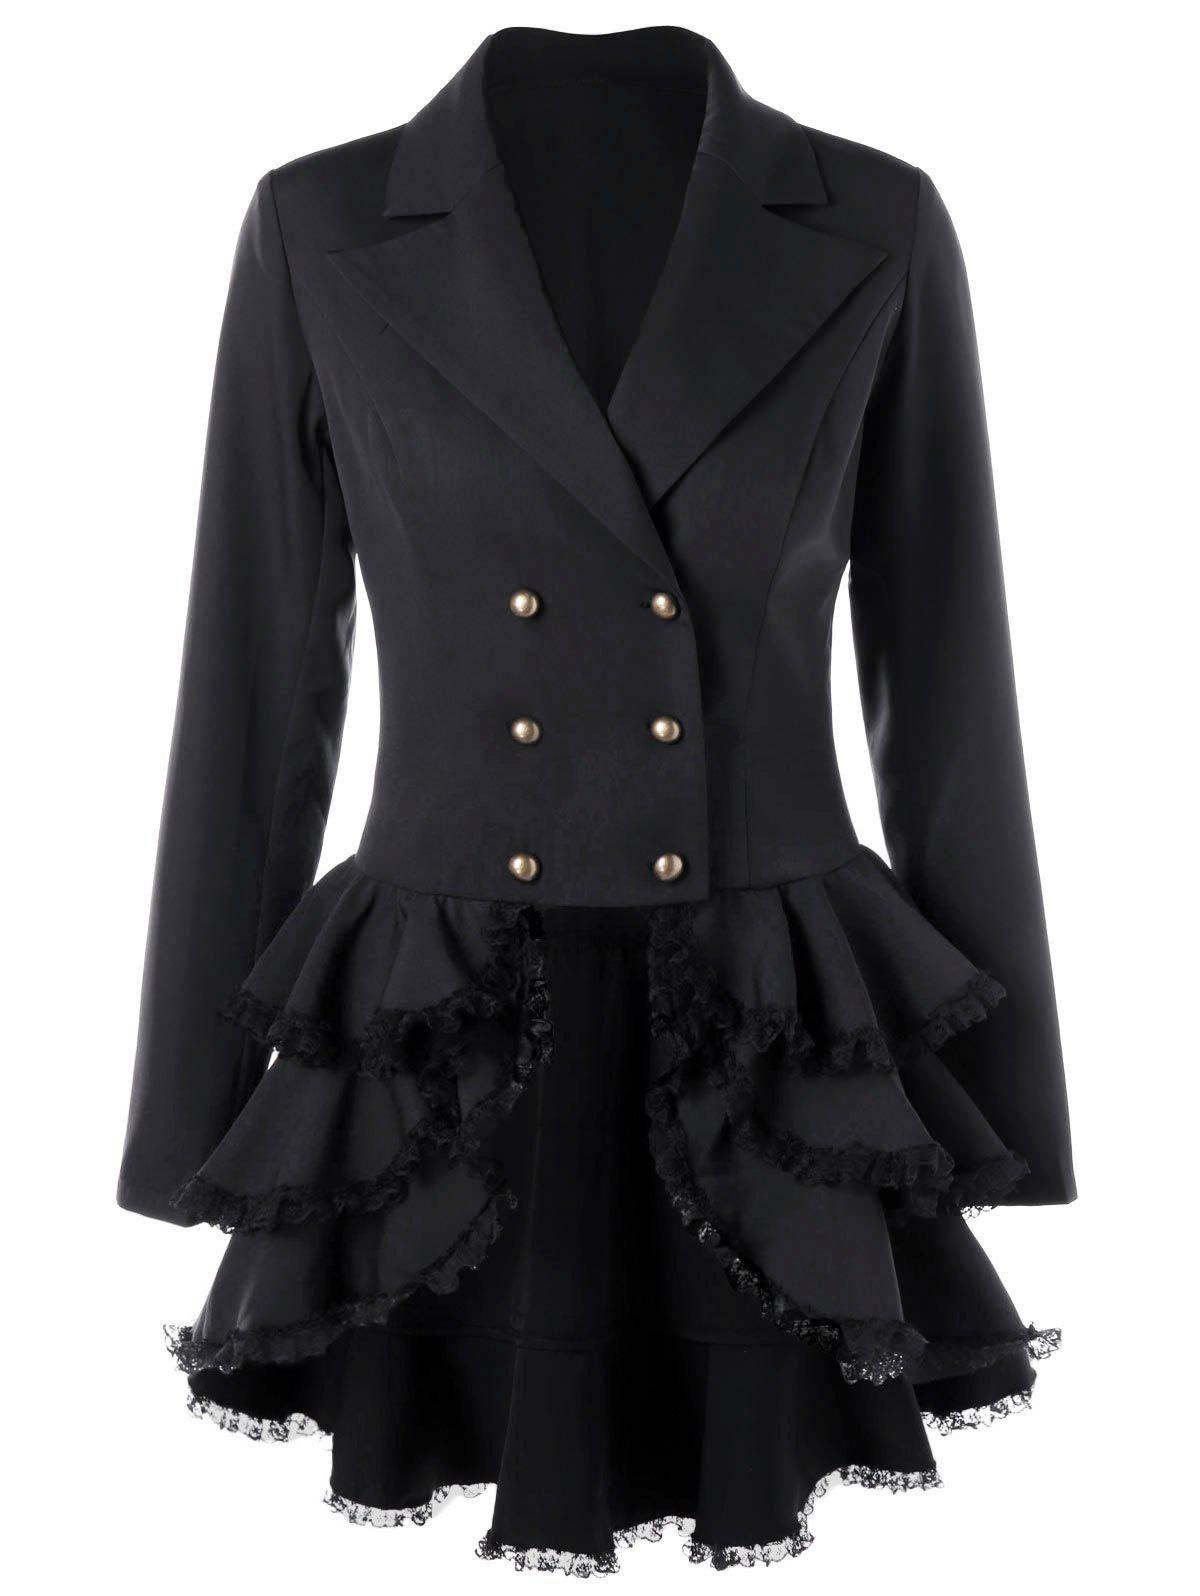 Double Breasted Layered Vintage CoatWOMEN<br><br>Size: XL; Color: BLACK; Clothes Type: Trench; Material: Polyester; Type: Slim; Shirt Length: Long; Sleeve Length: Full; Collar: Notched Collar; Pattern Type: Solid; Style: Vintage; Season: Fall,Spring; Weight: 0.4700kg; Package Contents: 1 x Coat;